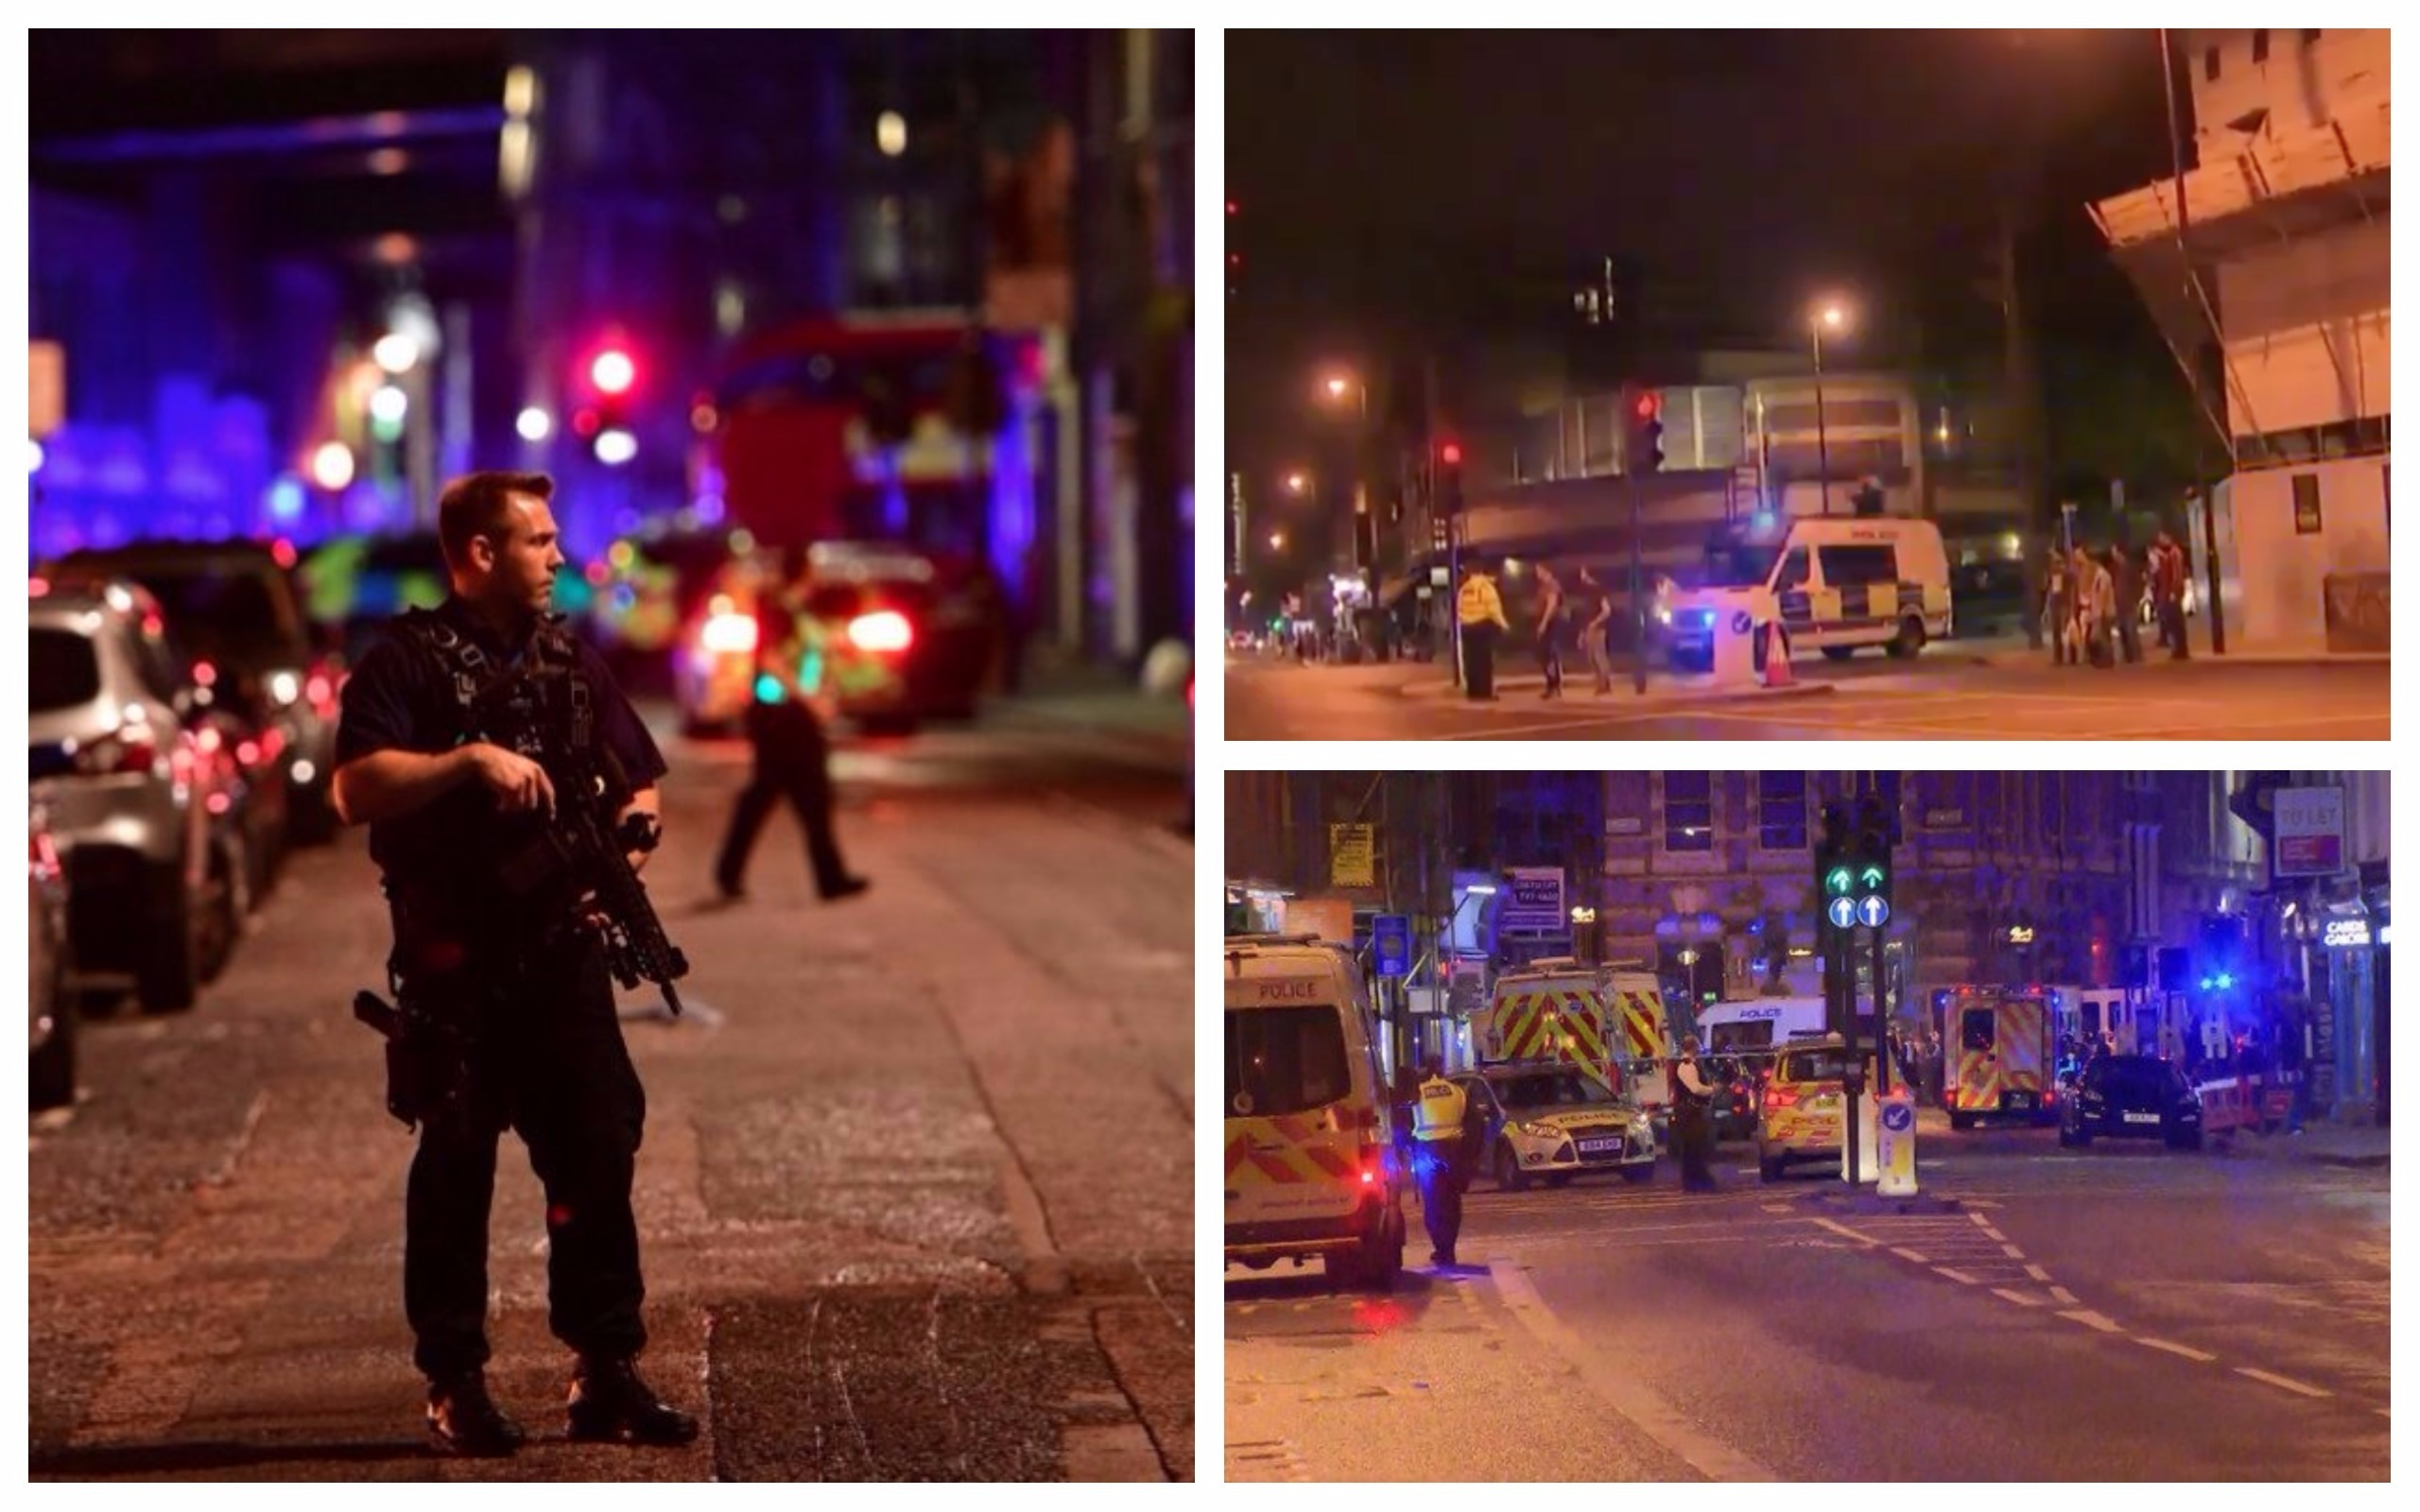 Emergency services at the scene in London